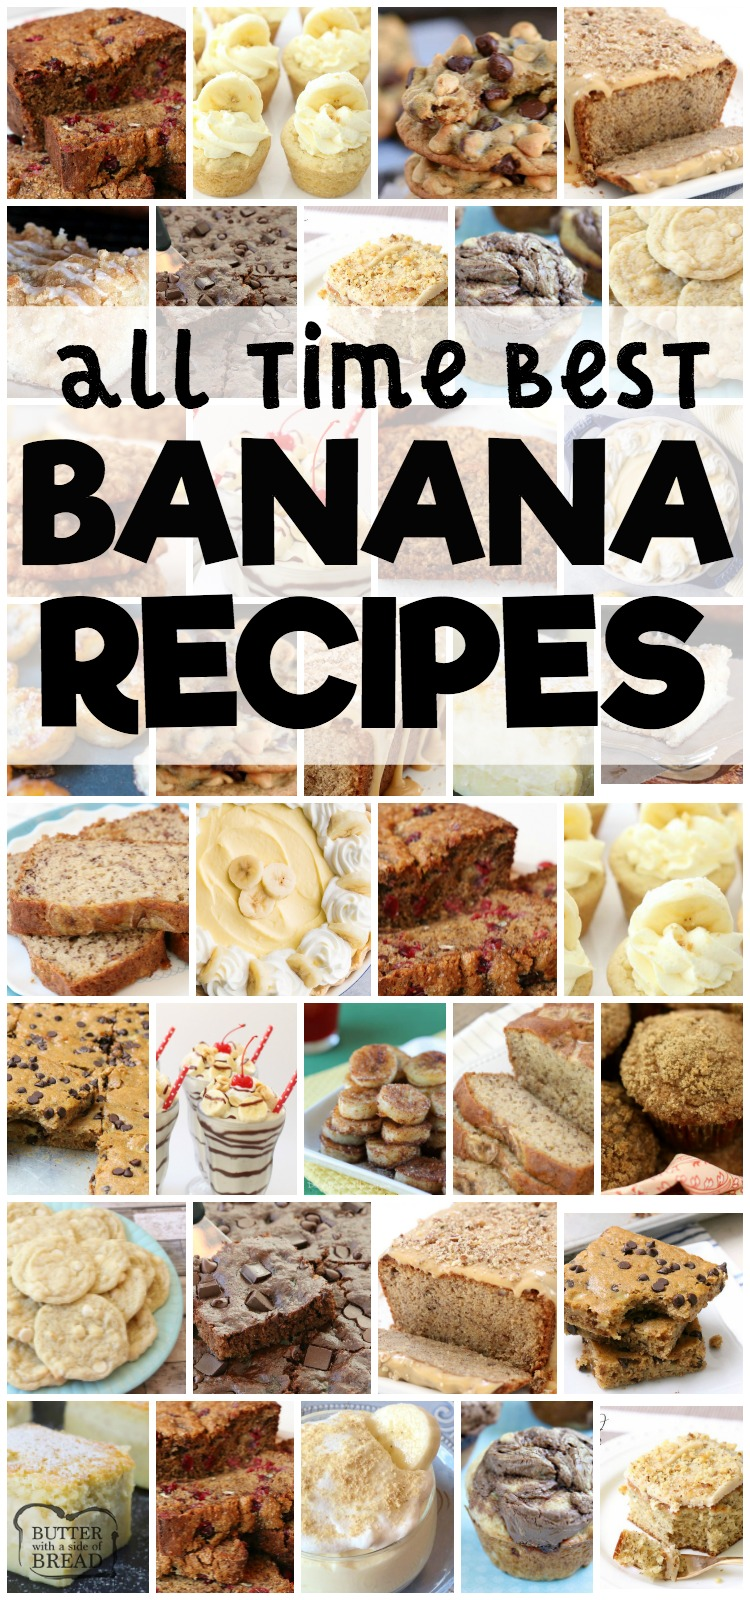 Best banana recipes for using those ripe bananas! Tried and true family favorite banana recipes for banana bread, banana muffins, banana pudding, bars, cookies and more. #banana $recipes #bananabread #cookies #cake #baking #desserts from BUTTER WITH A SIDE OF BREAD